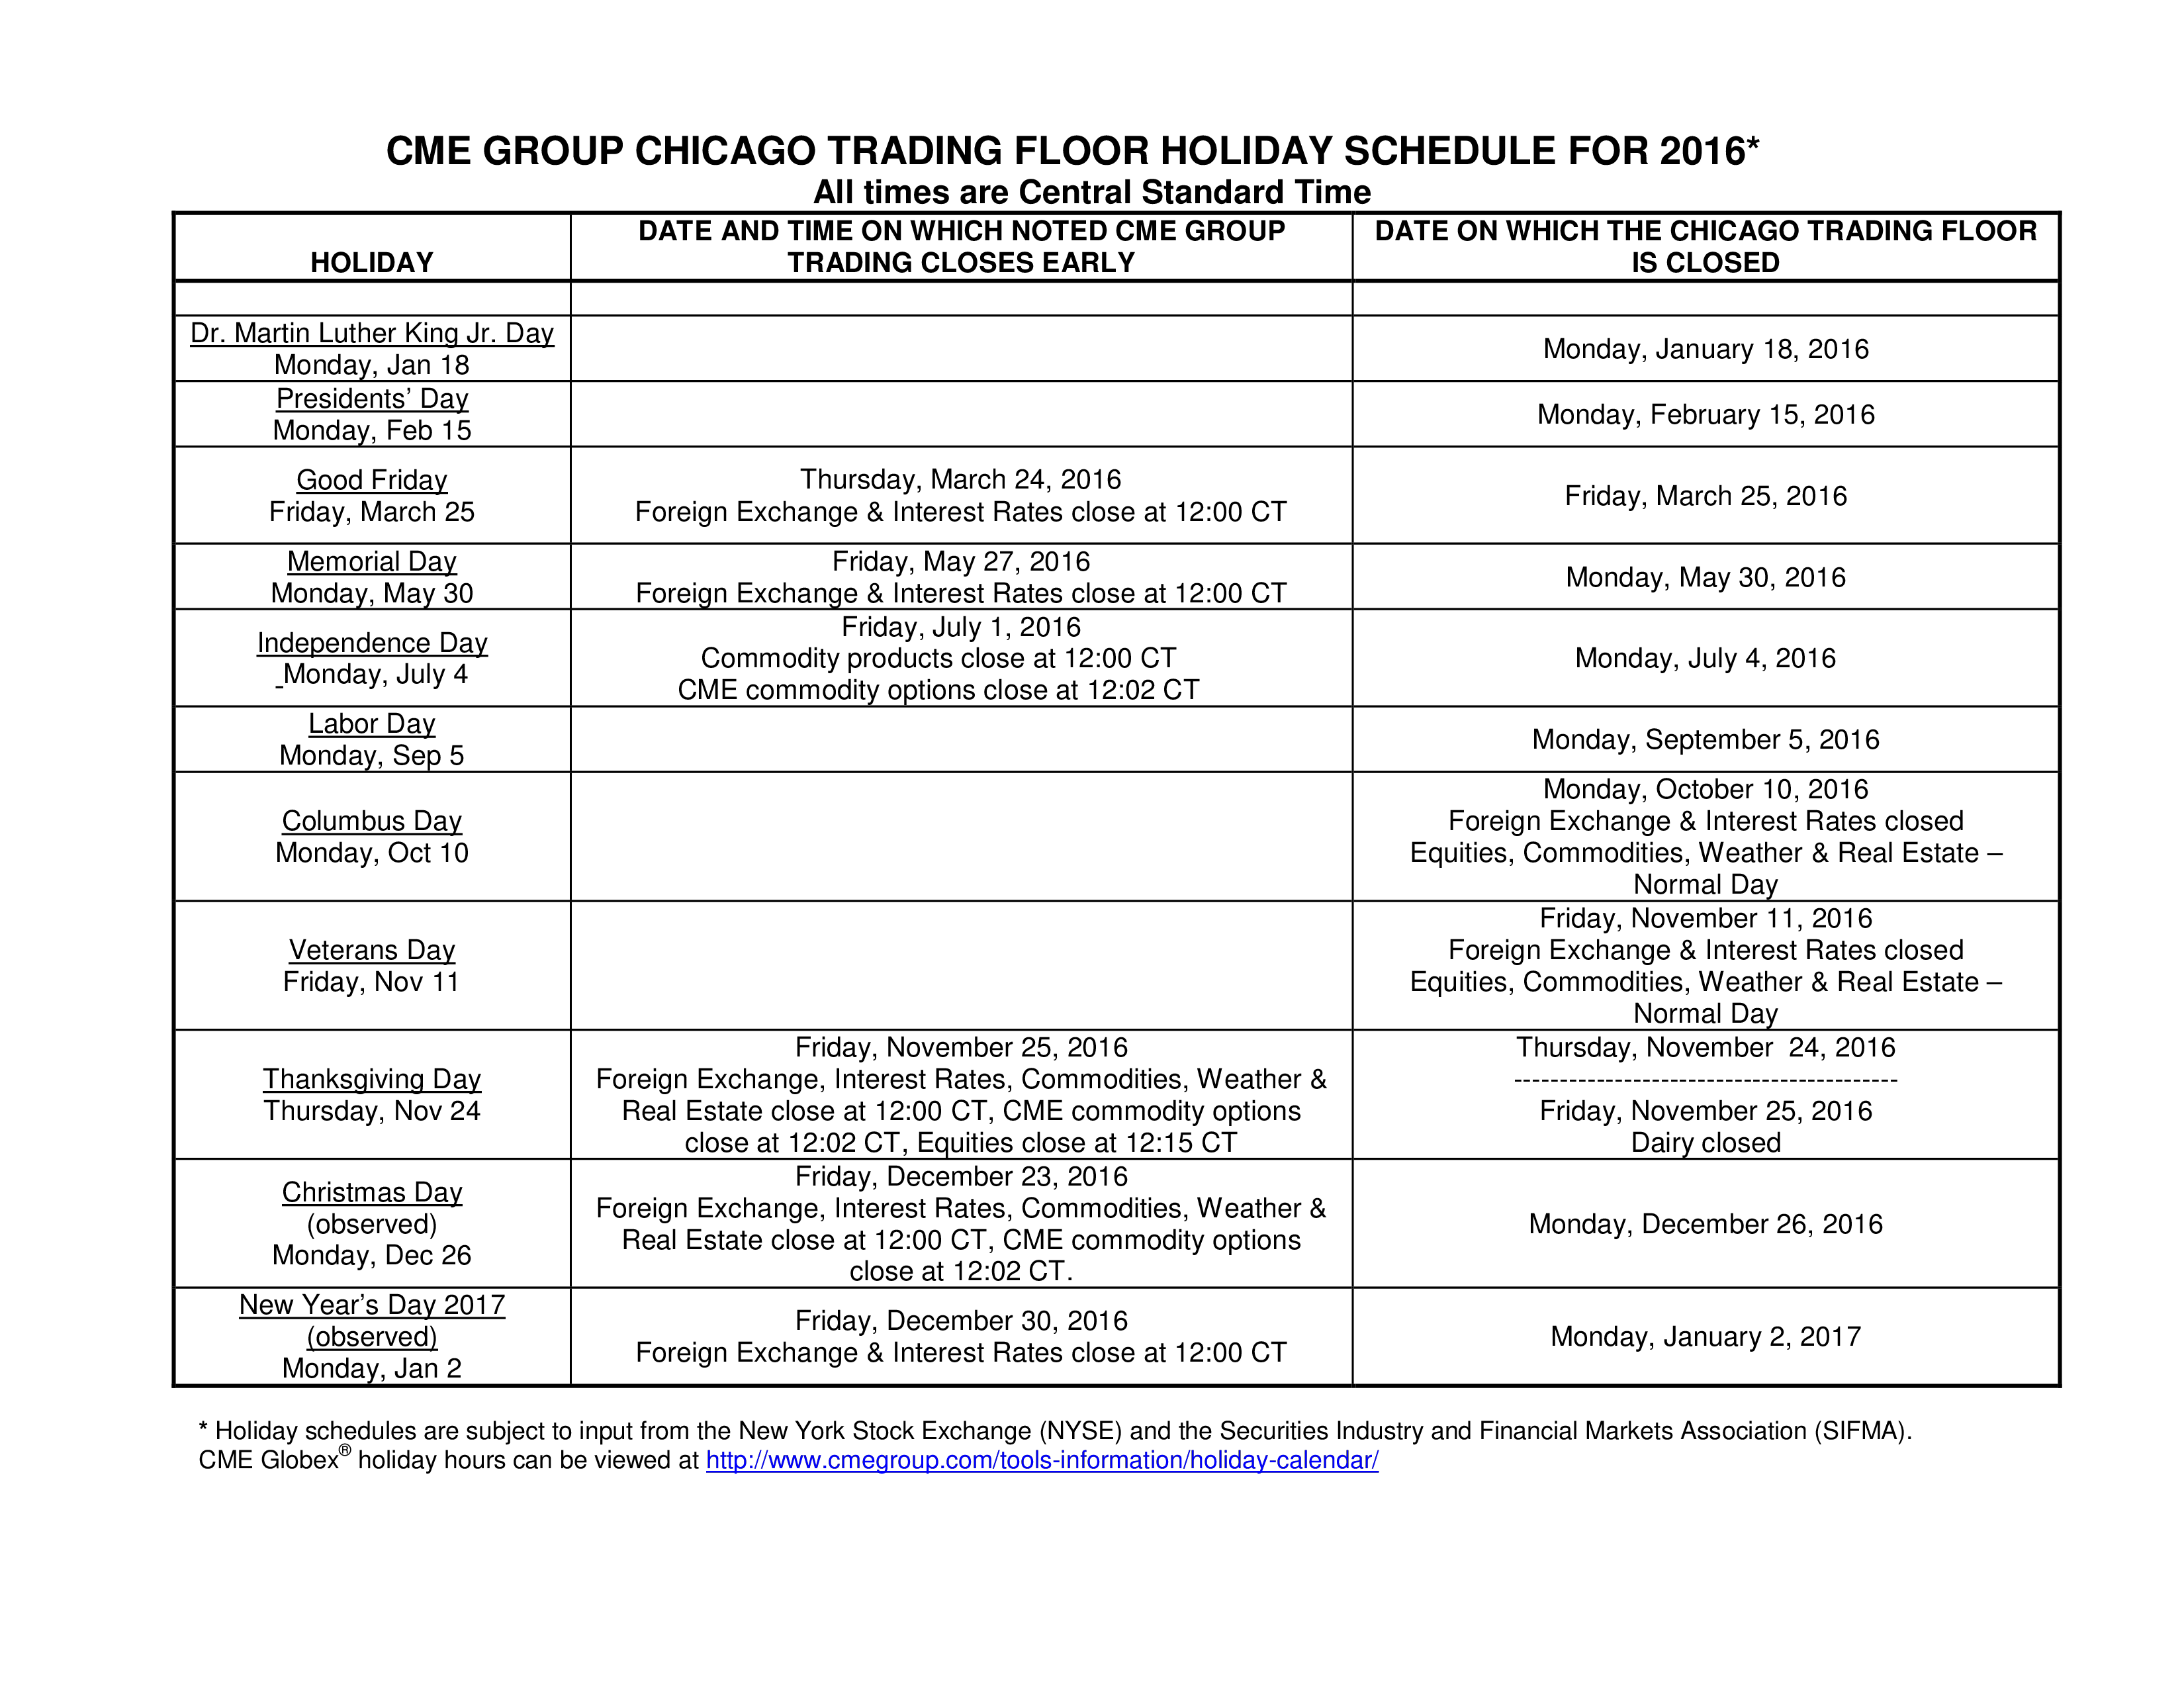 cme group chicago trading floor holiday schedule for 2016* - 4